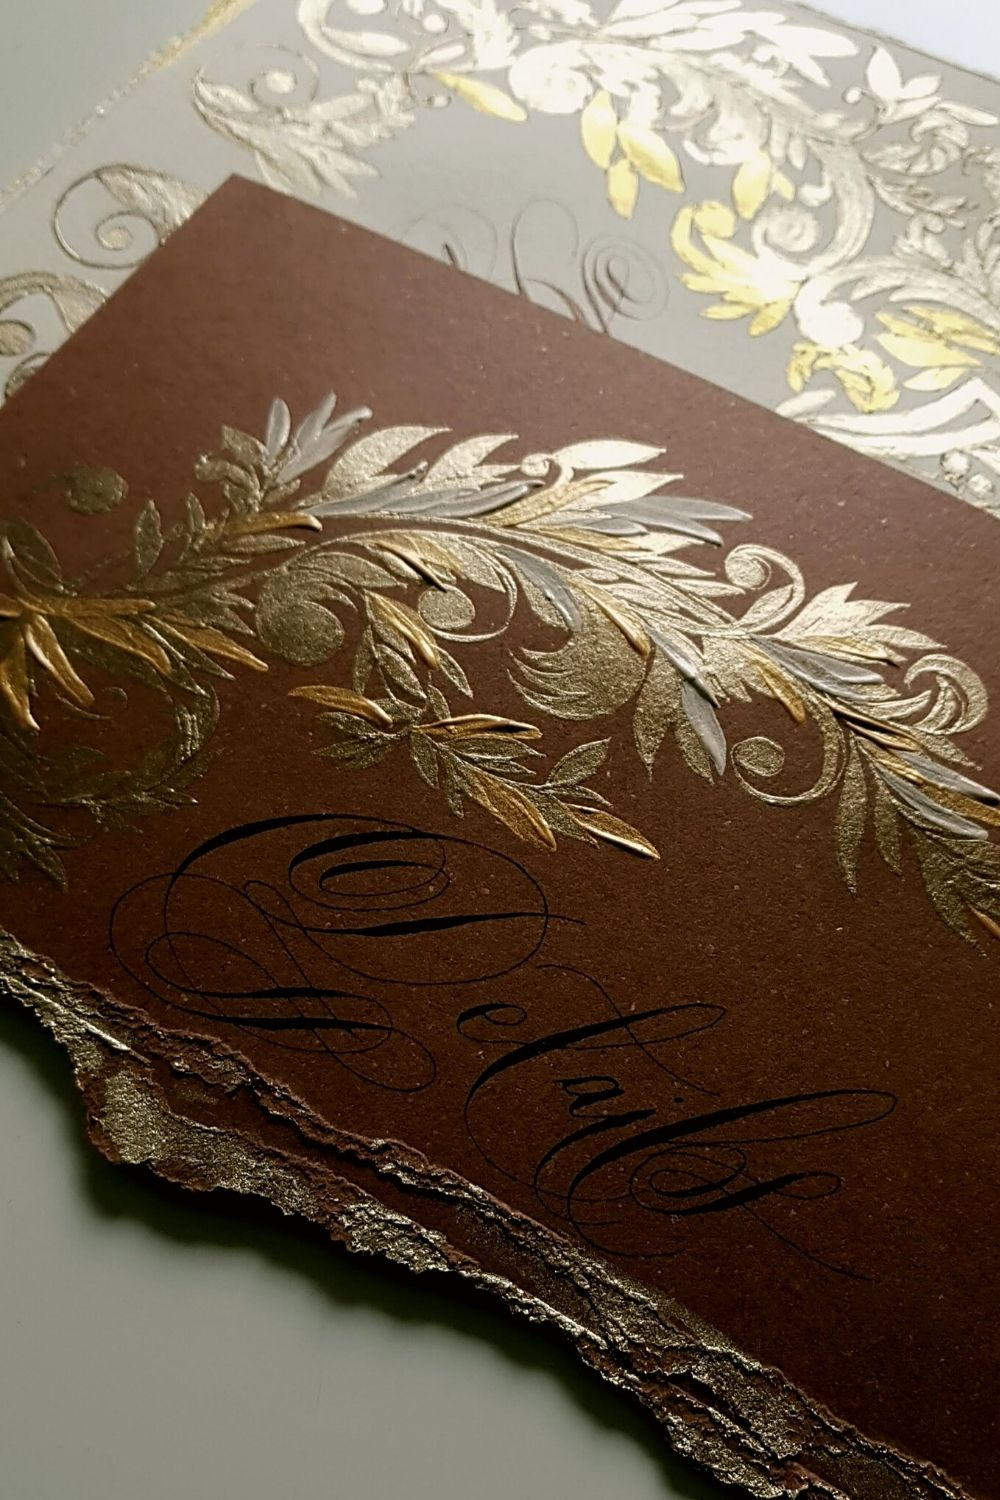 Villa Erba wedding invitations with deep brown card with gold hand painted details and a torn edge